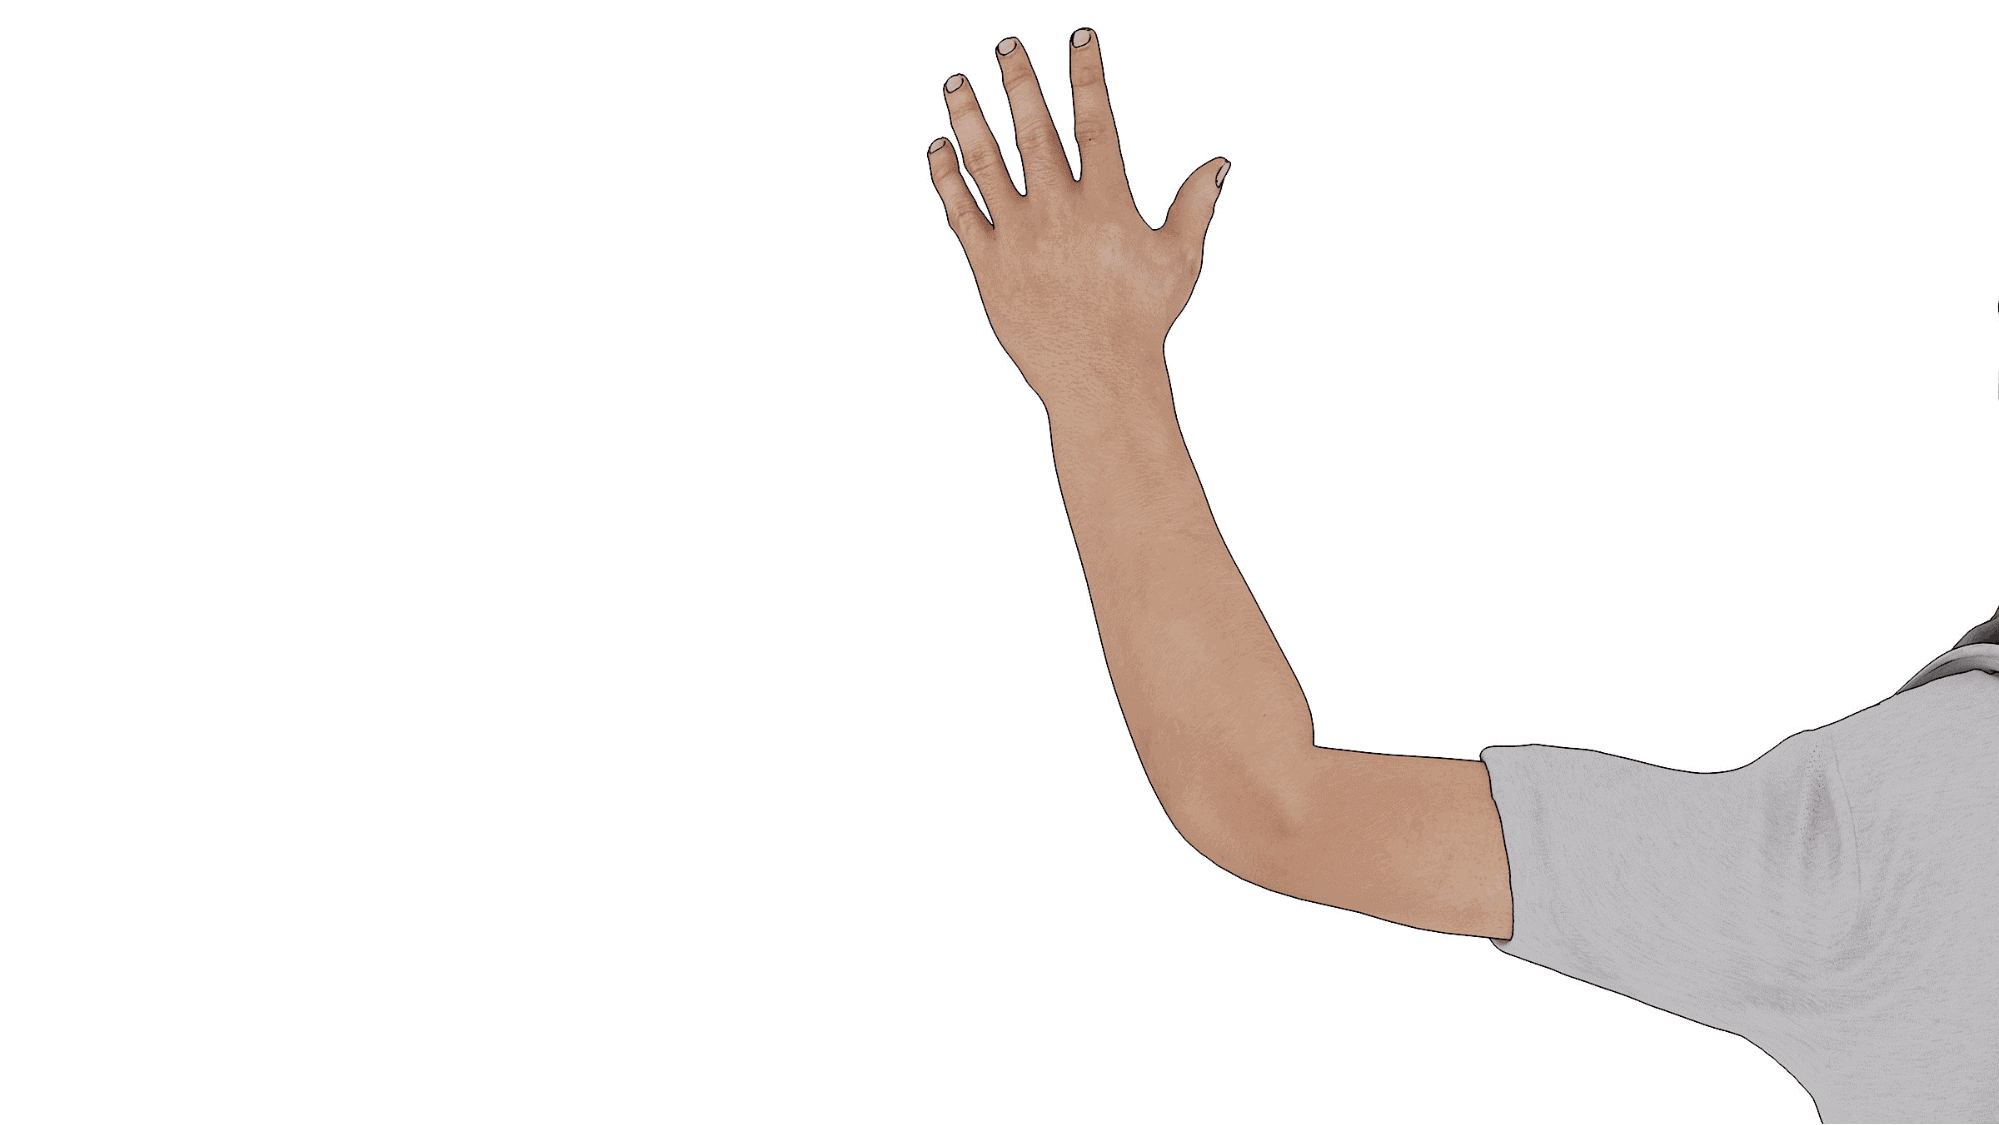 driver using hand signal to turn right